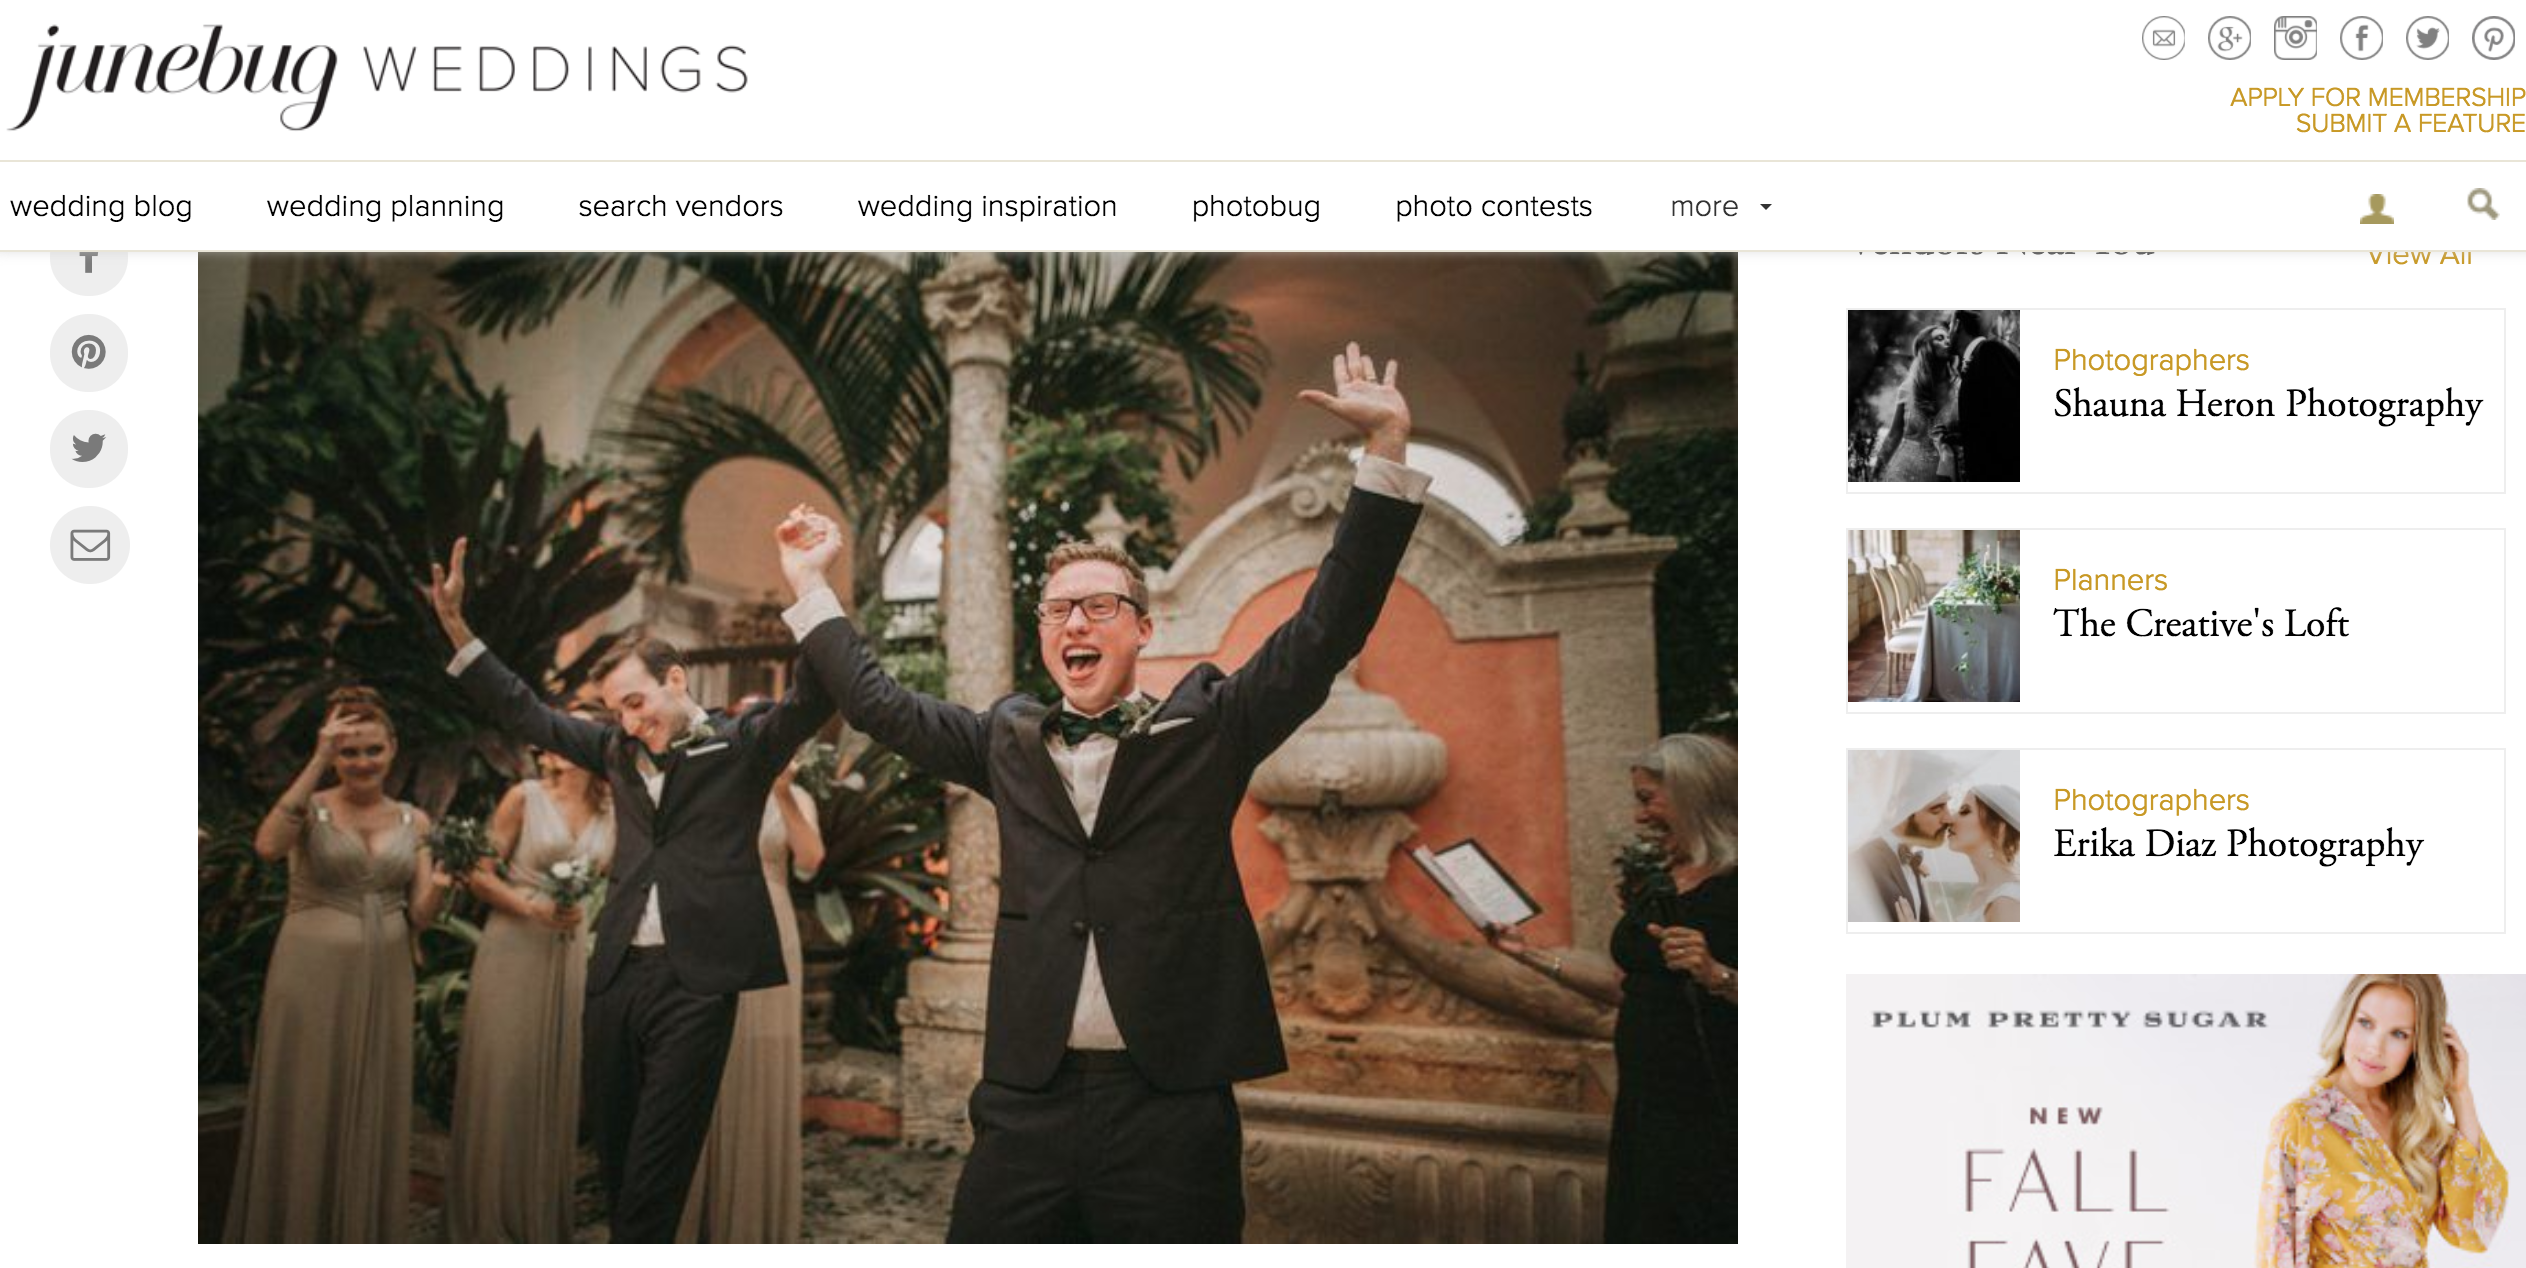 Featured on Junebug Weddings our Vizcaya Wedding The Creatives Loft Miami Wedding Planner Pablo Laguia Wedding Photographer